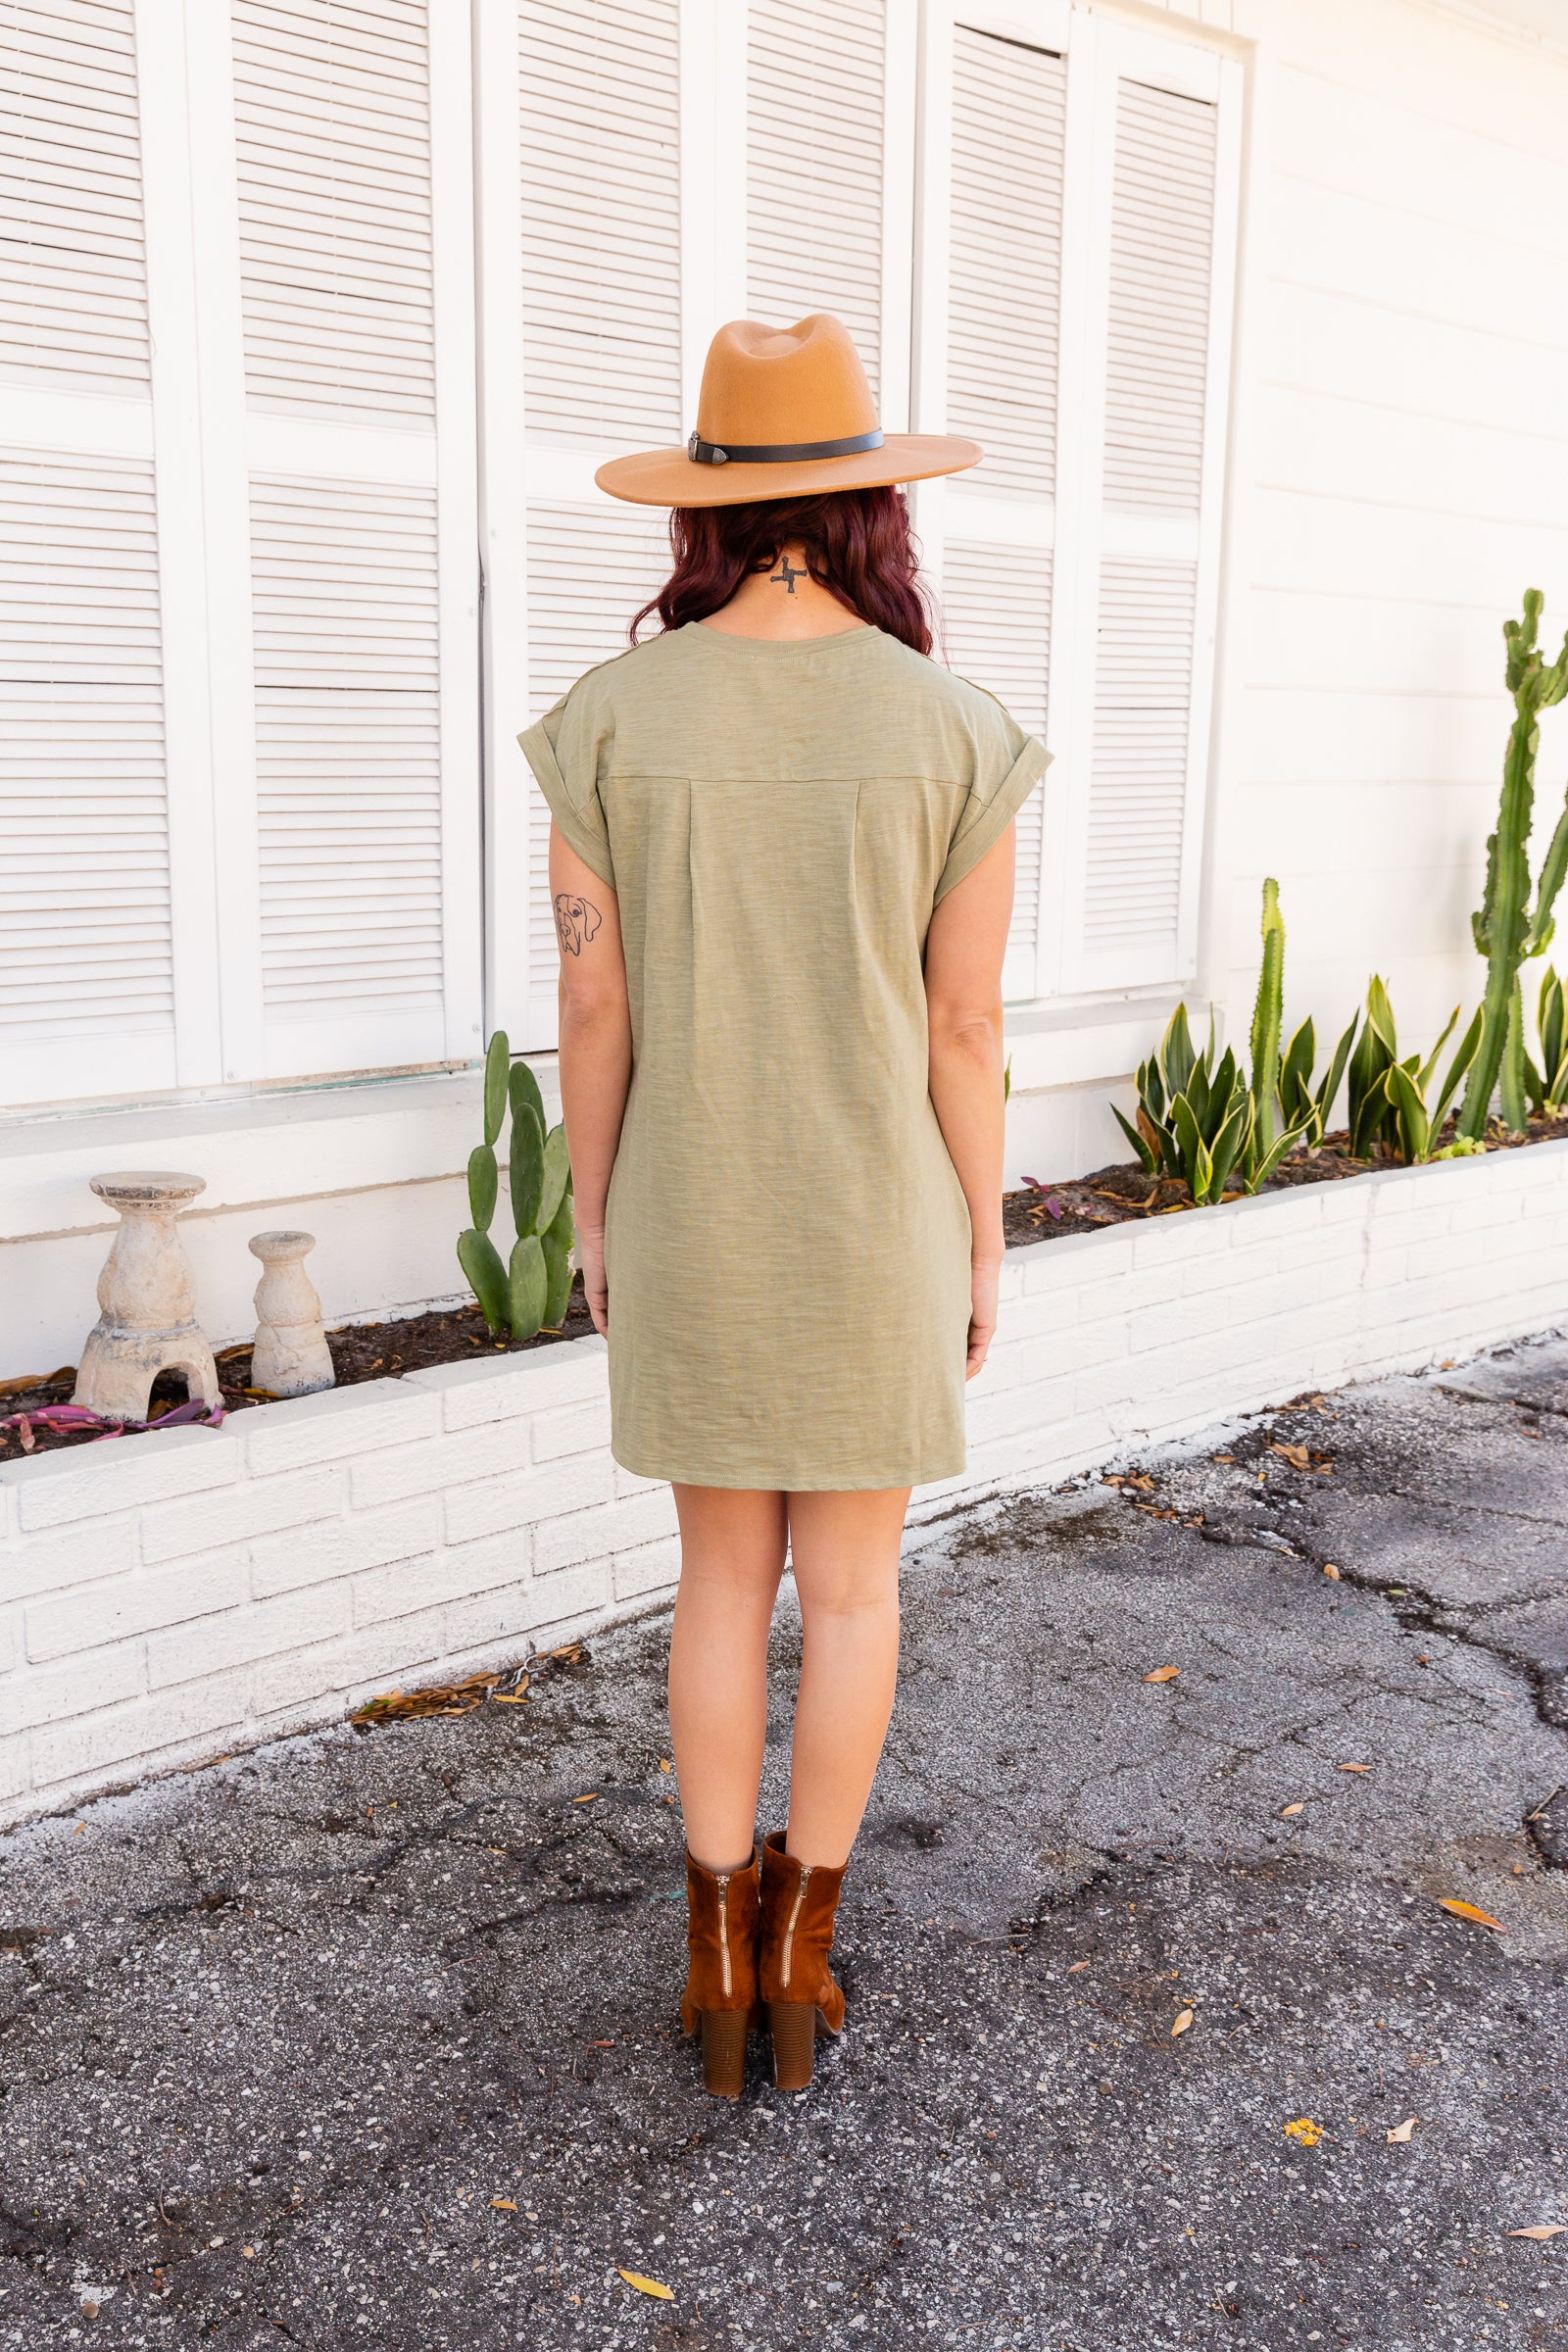 Short rolled sleeves attach to a crew neckline on a loose and relaxed fit dress with side pockets. This tee dress features a front pocket to detail the chest.